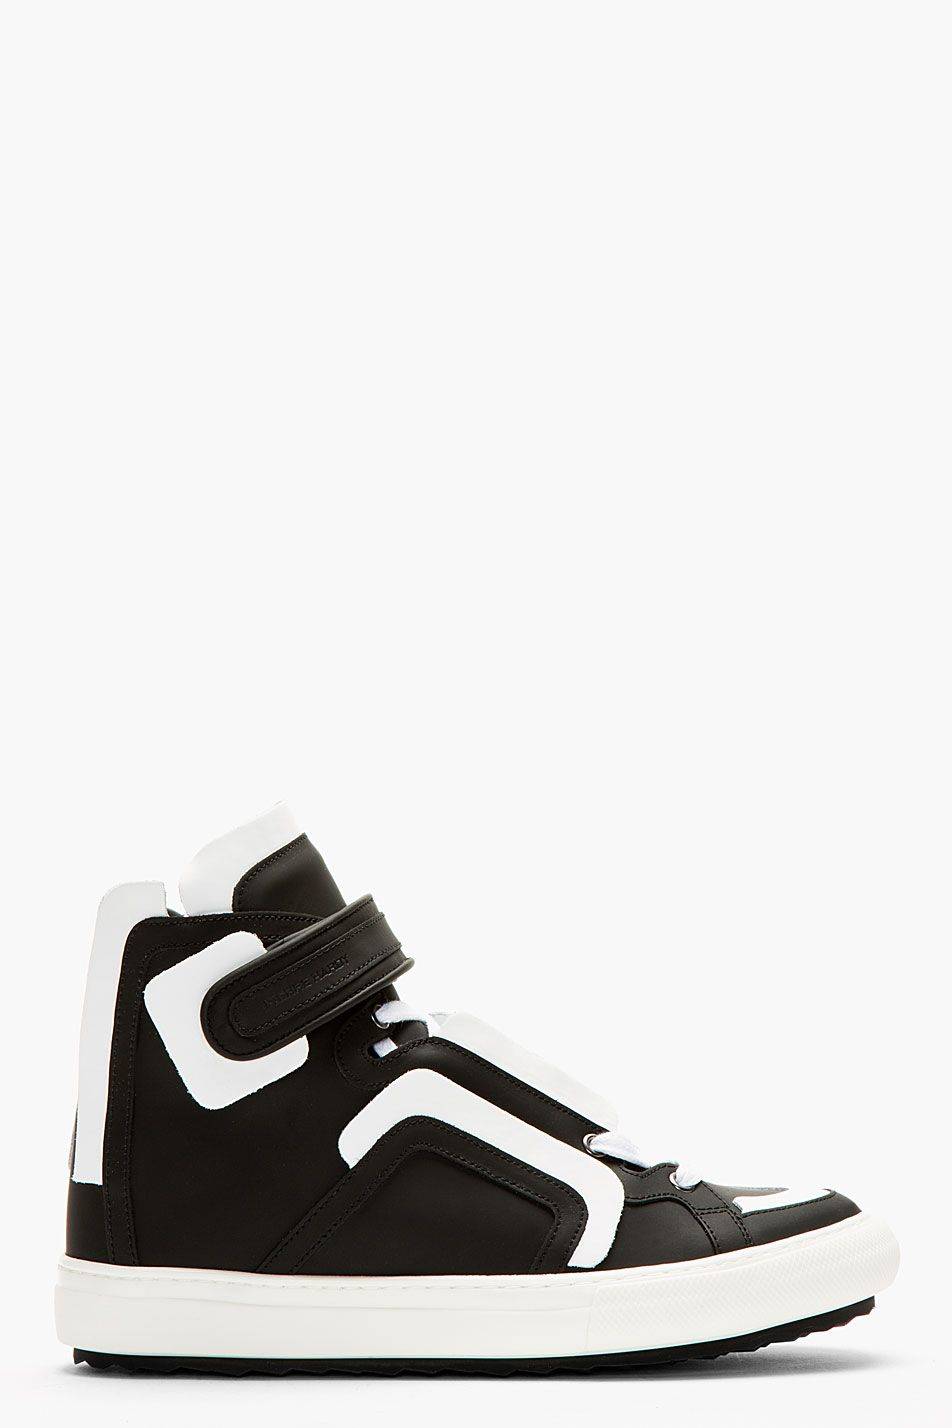 3733d89aaf7d Pierre Hardy Black Leather White Flag High top Sneakers